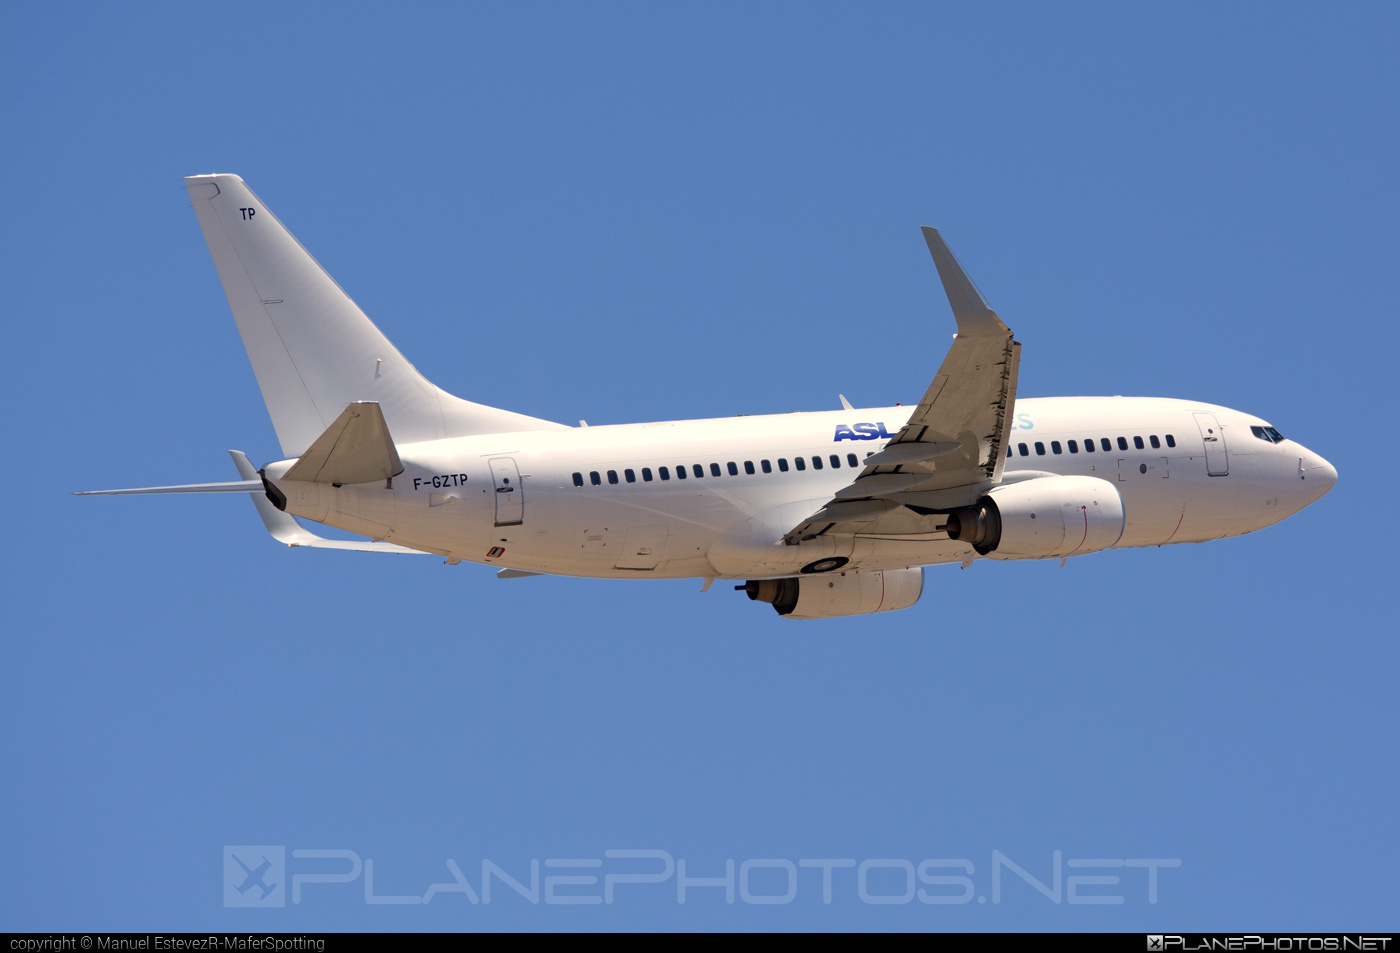 Boeing 737-700 - F-GZTP operated by ASL Airlines France #aslairlines #aslairlinesfrance #b737 #b737nextgen #b737ng #boeing #boeing737